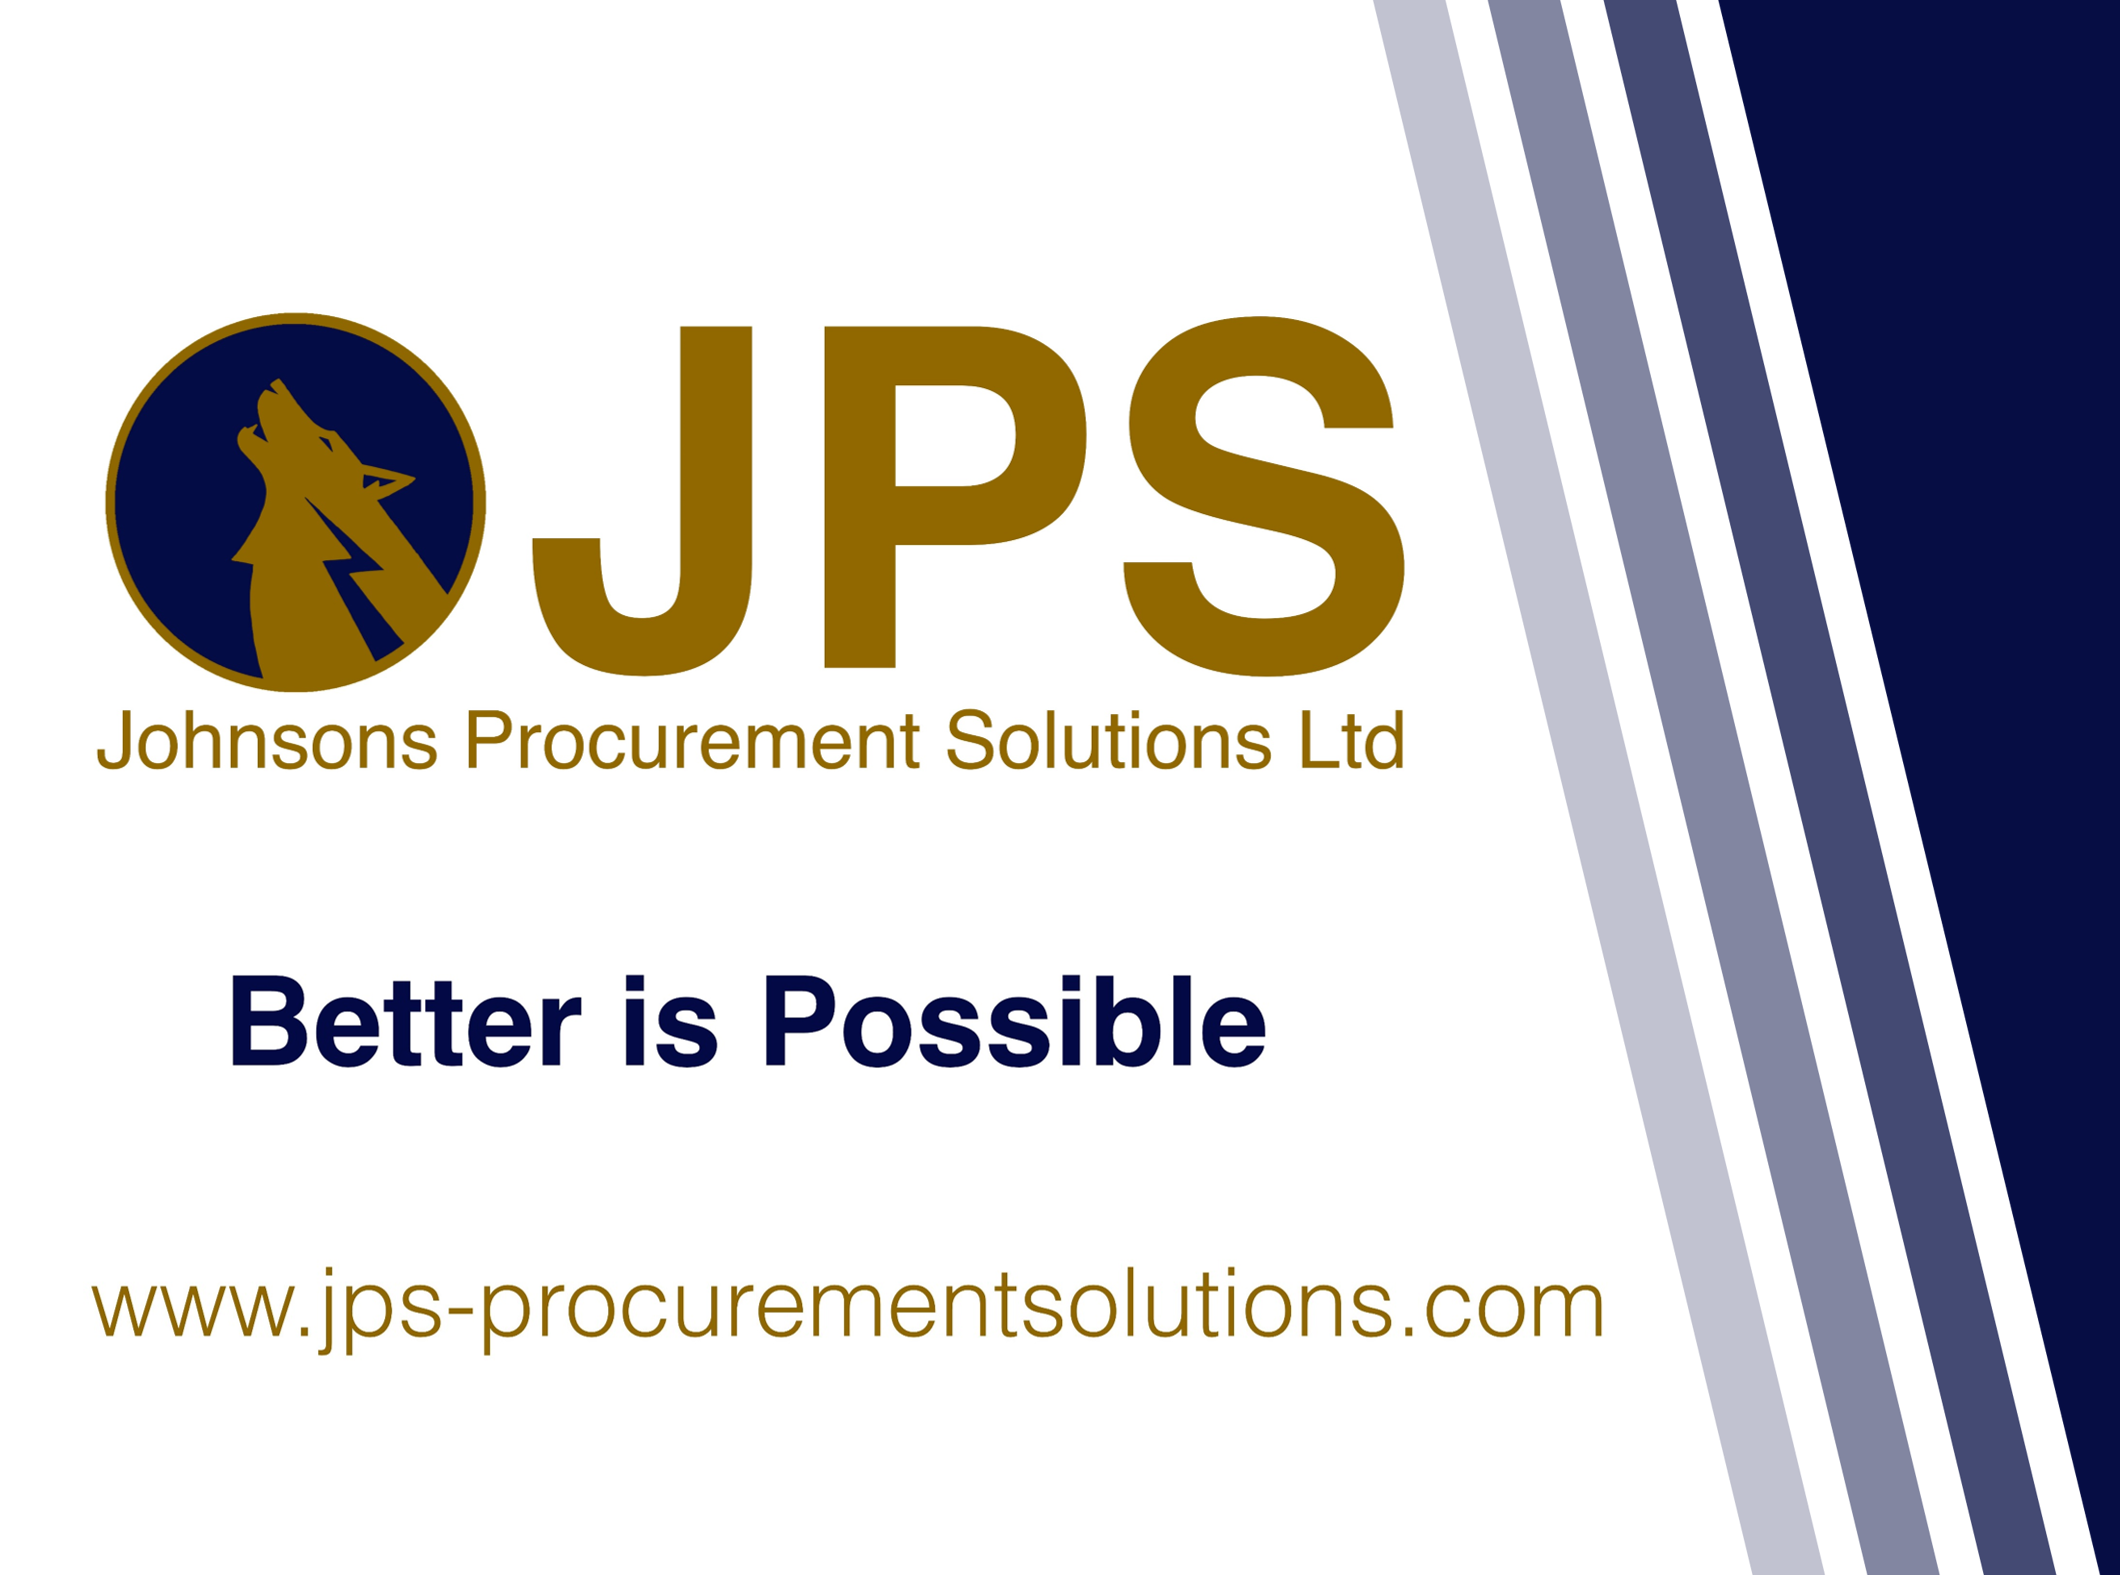 D10 - Johnson Procurement Solutions